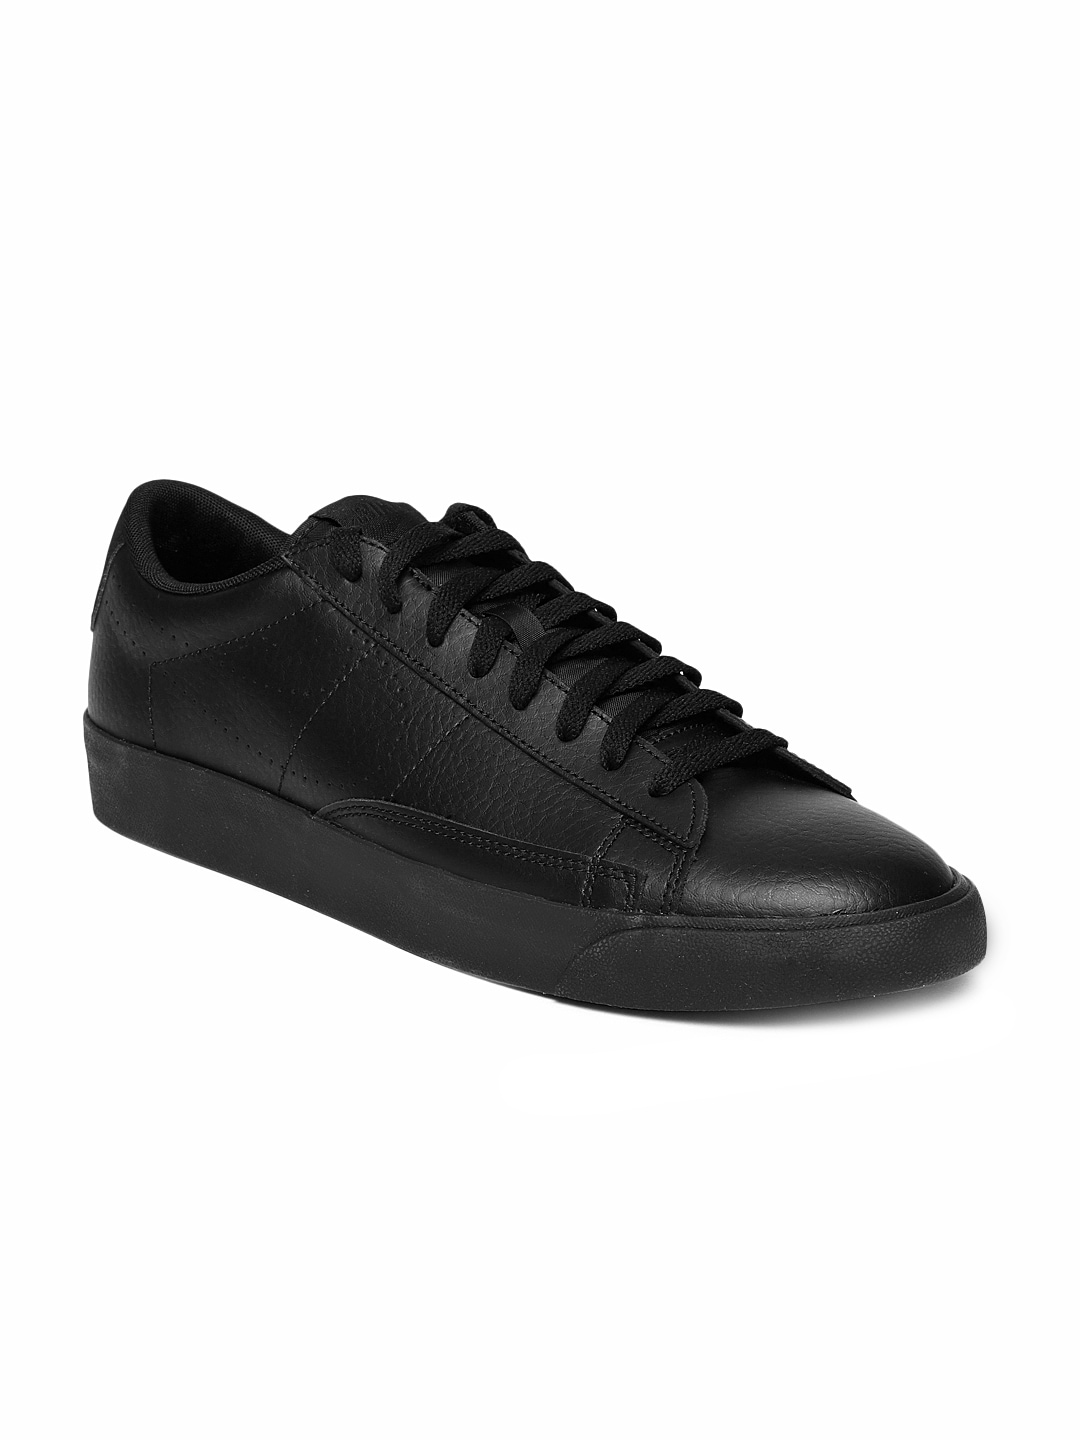 72f3a370650a Nike Leather Black Casual Shoes - Buy Nike Leather Black Casual Shoes  online in India